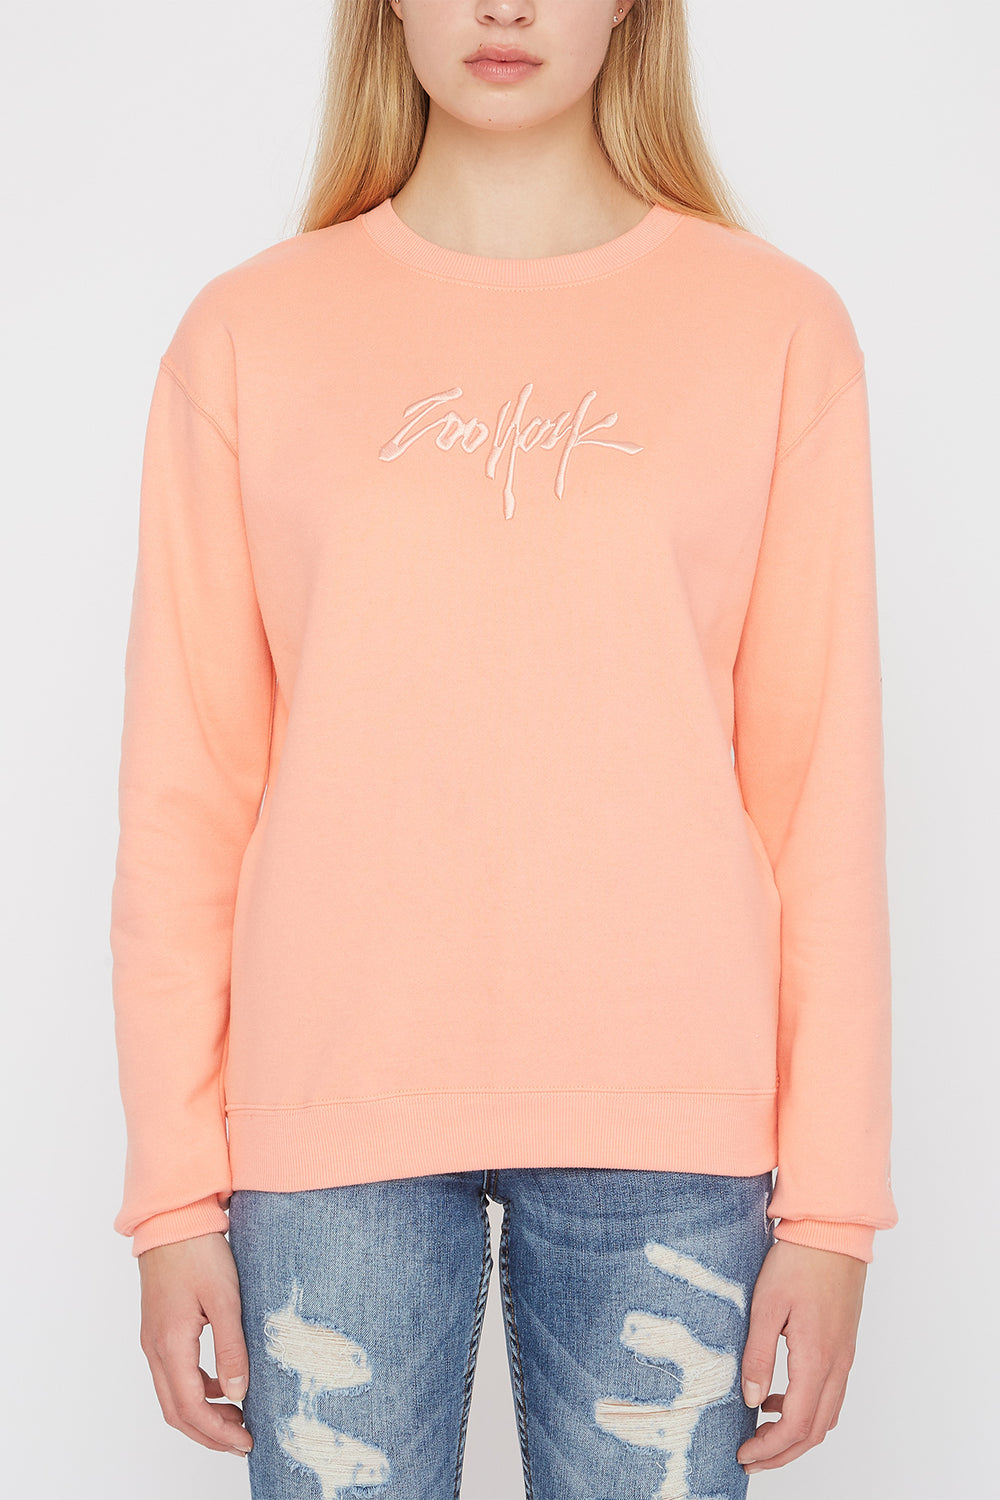 Zoo York Womens Embroidered Logo Pastel Sweater Peach